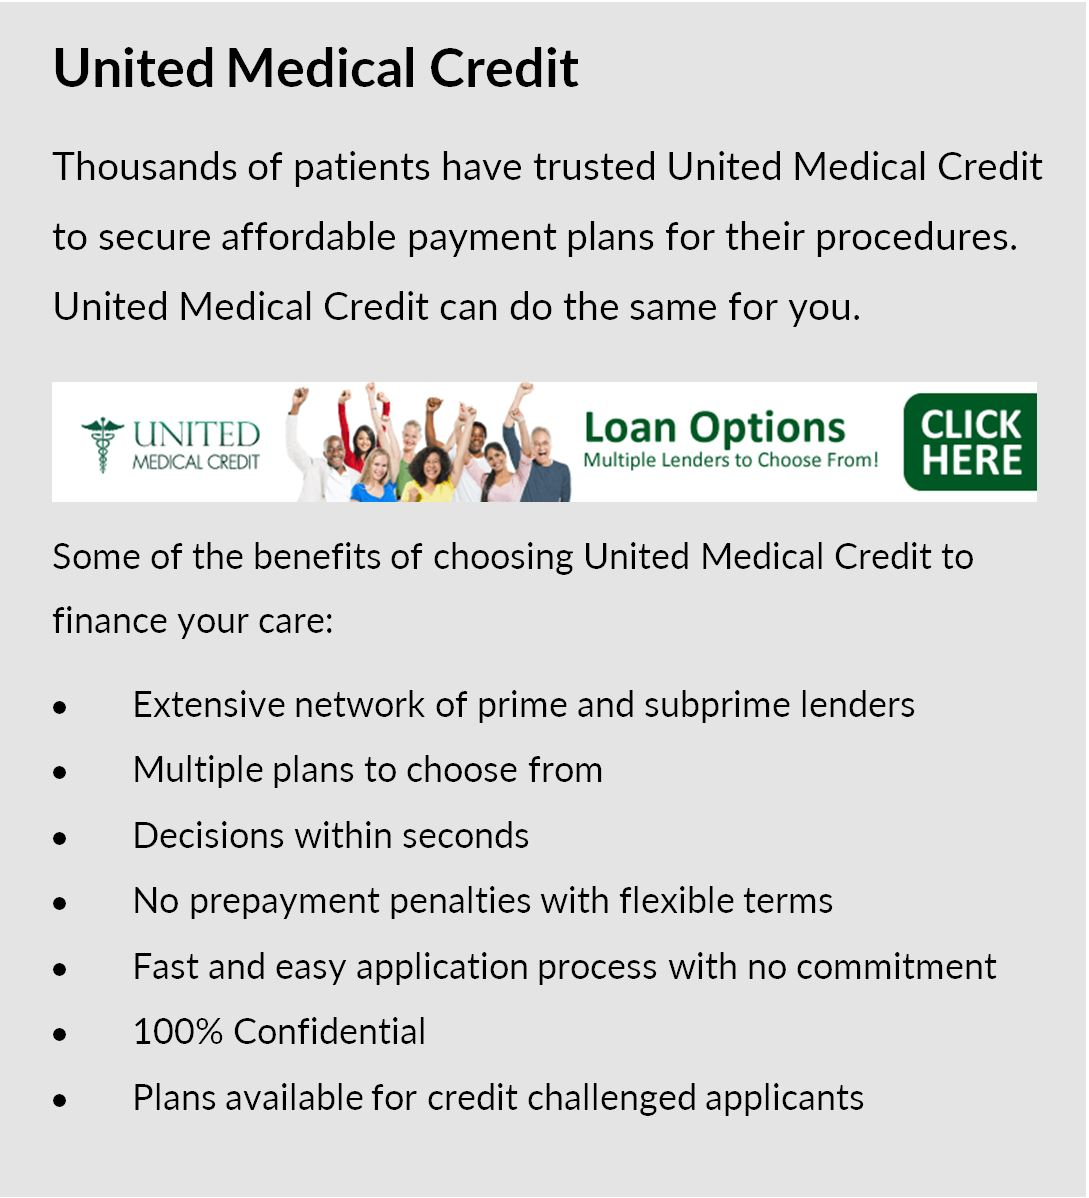 united-medical-credit_vertical-banner_zoomed-out-150-percent-size